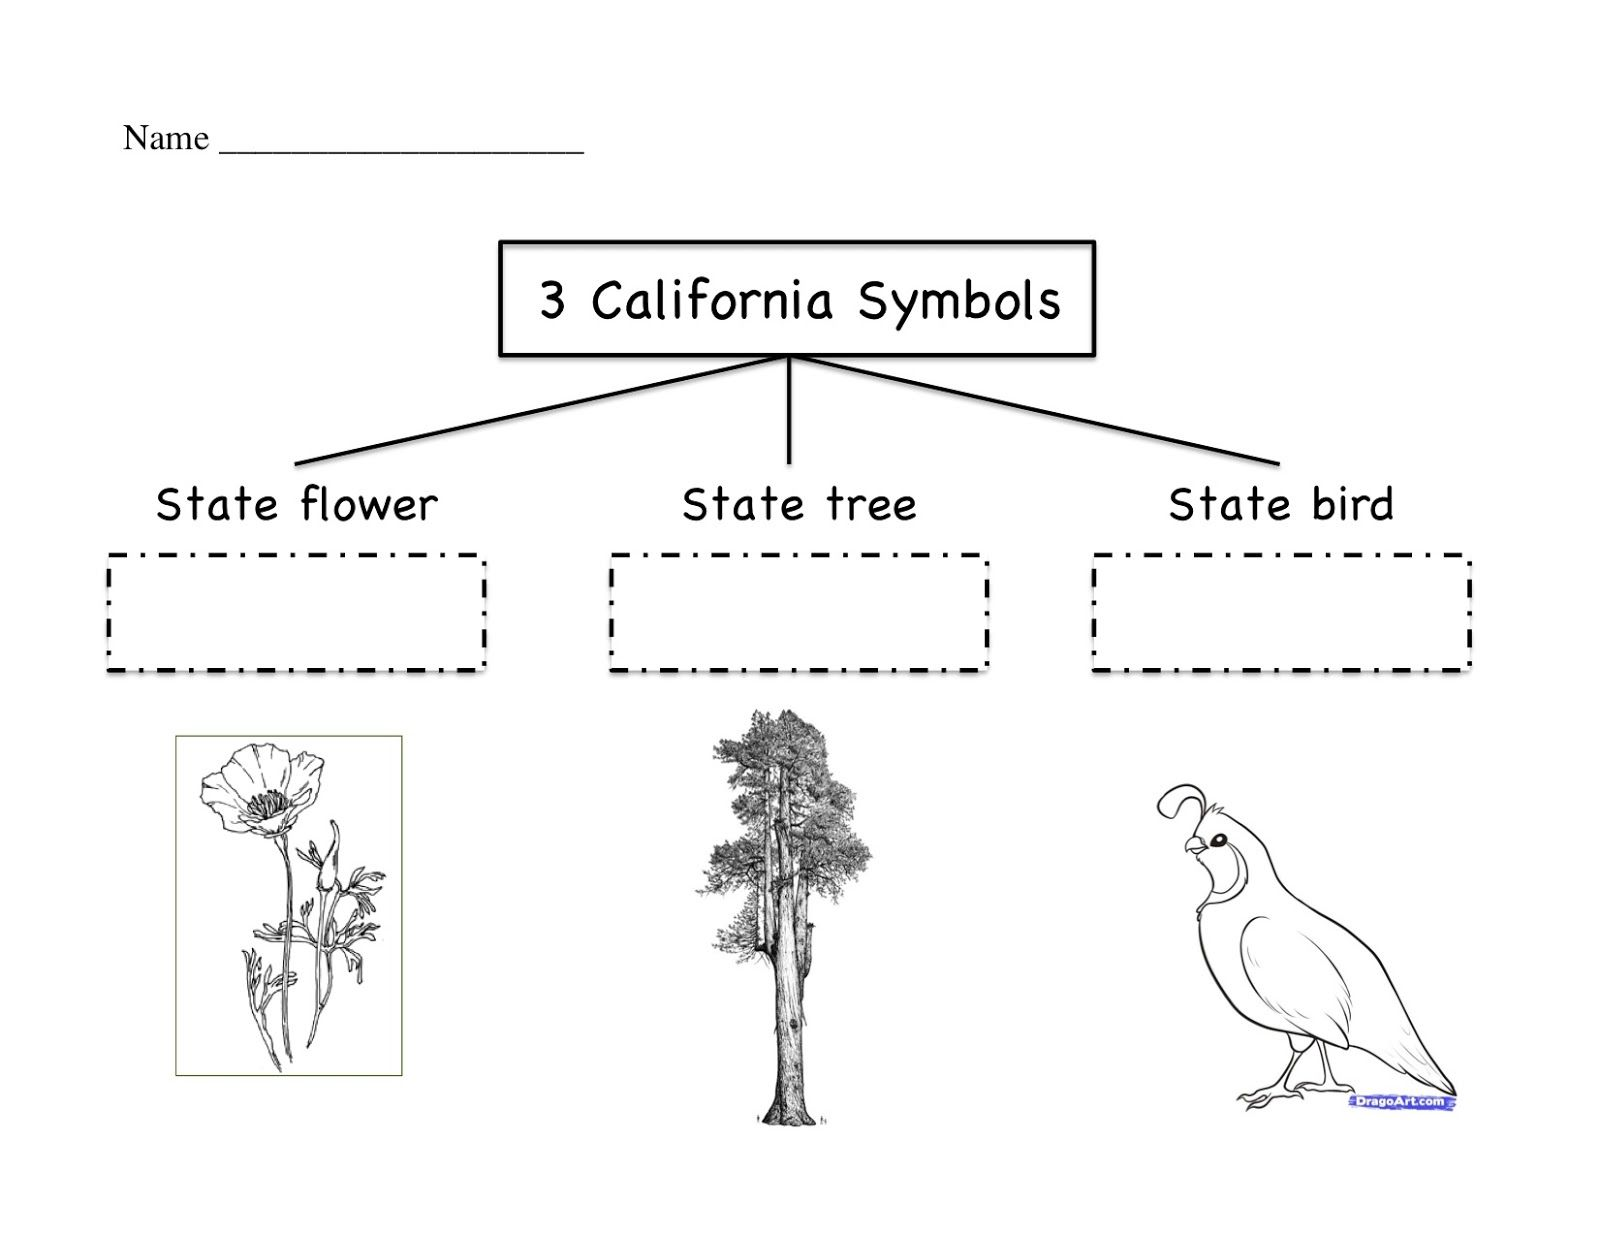 Free Worksheet Labeling The California Symbols Kinder Learning Garden Blog